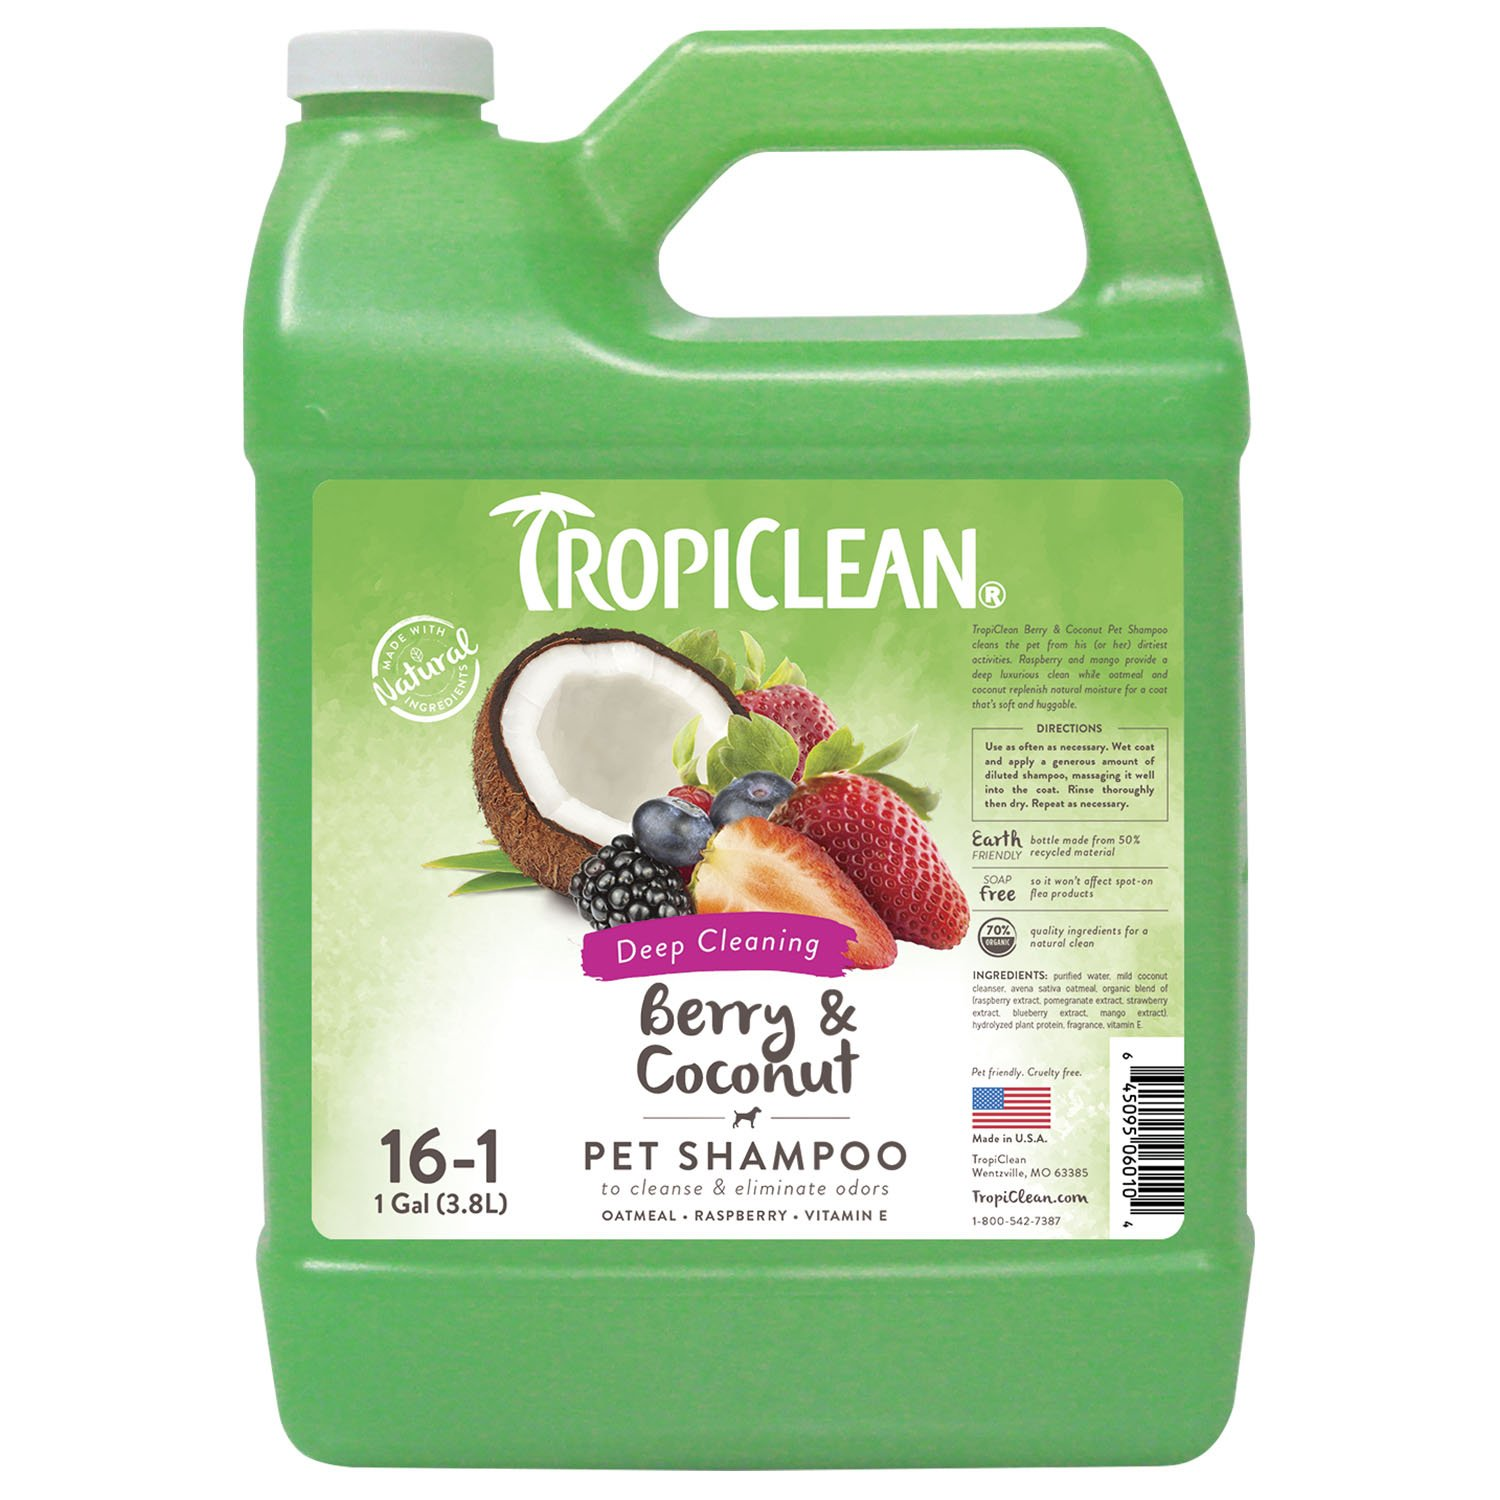 COSMOS 060104 TropiClean Berry and Coconut Deep Cleaning Pet Shampoo, 1 Gallon 451032